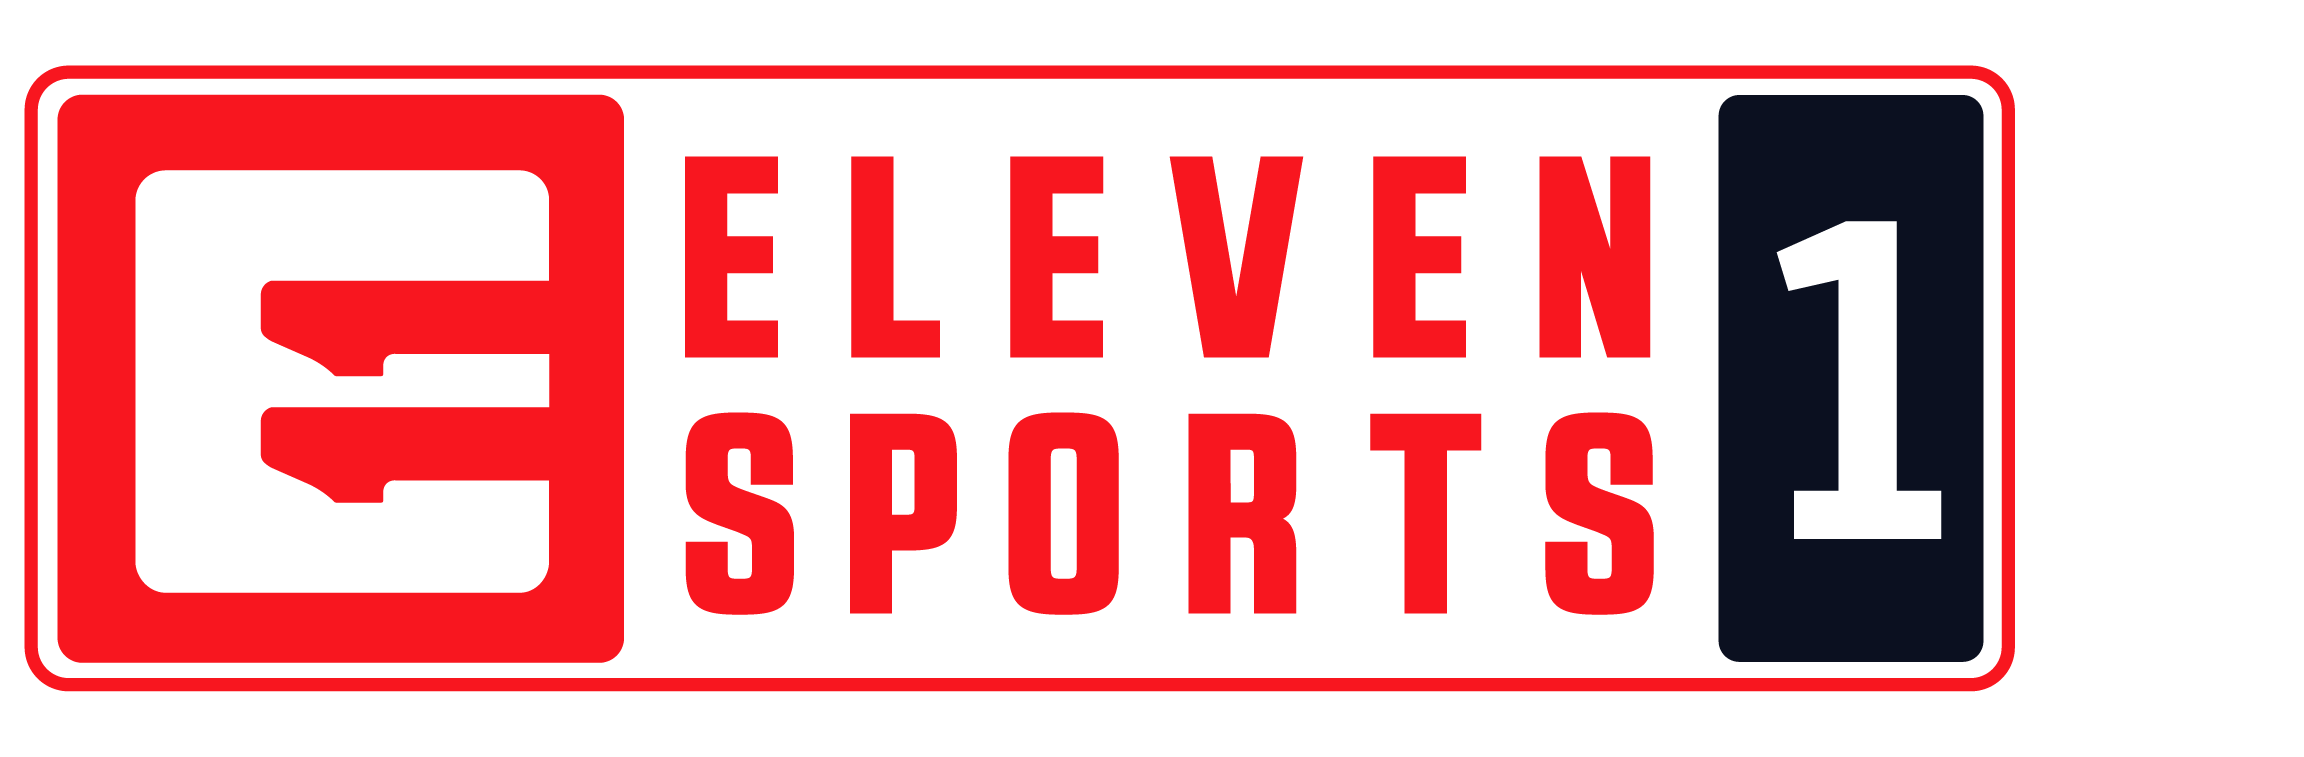 eleven sports 3 live streaming free online watch